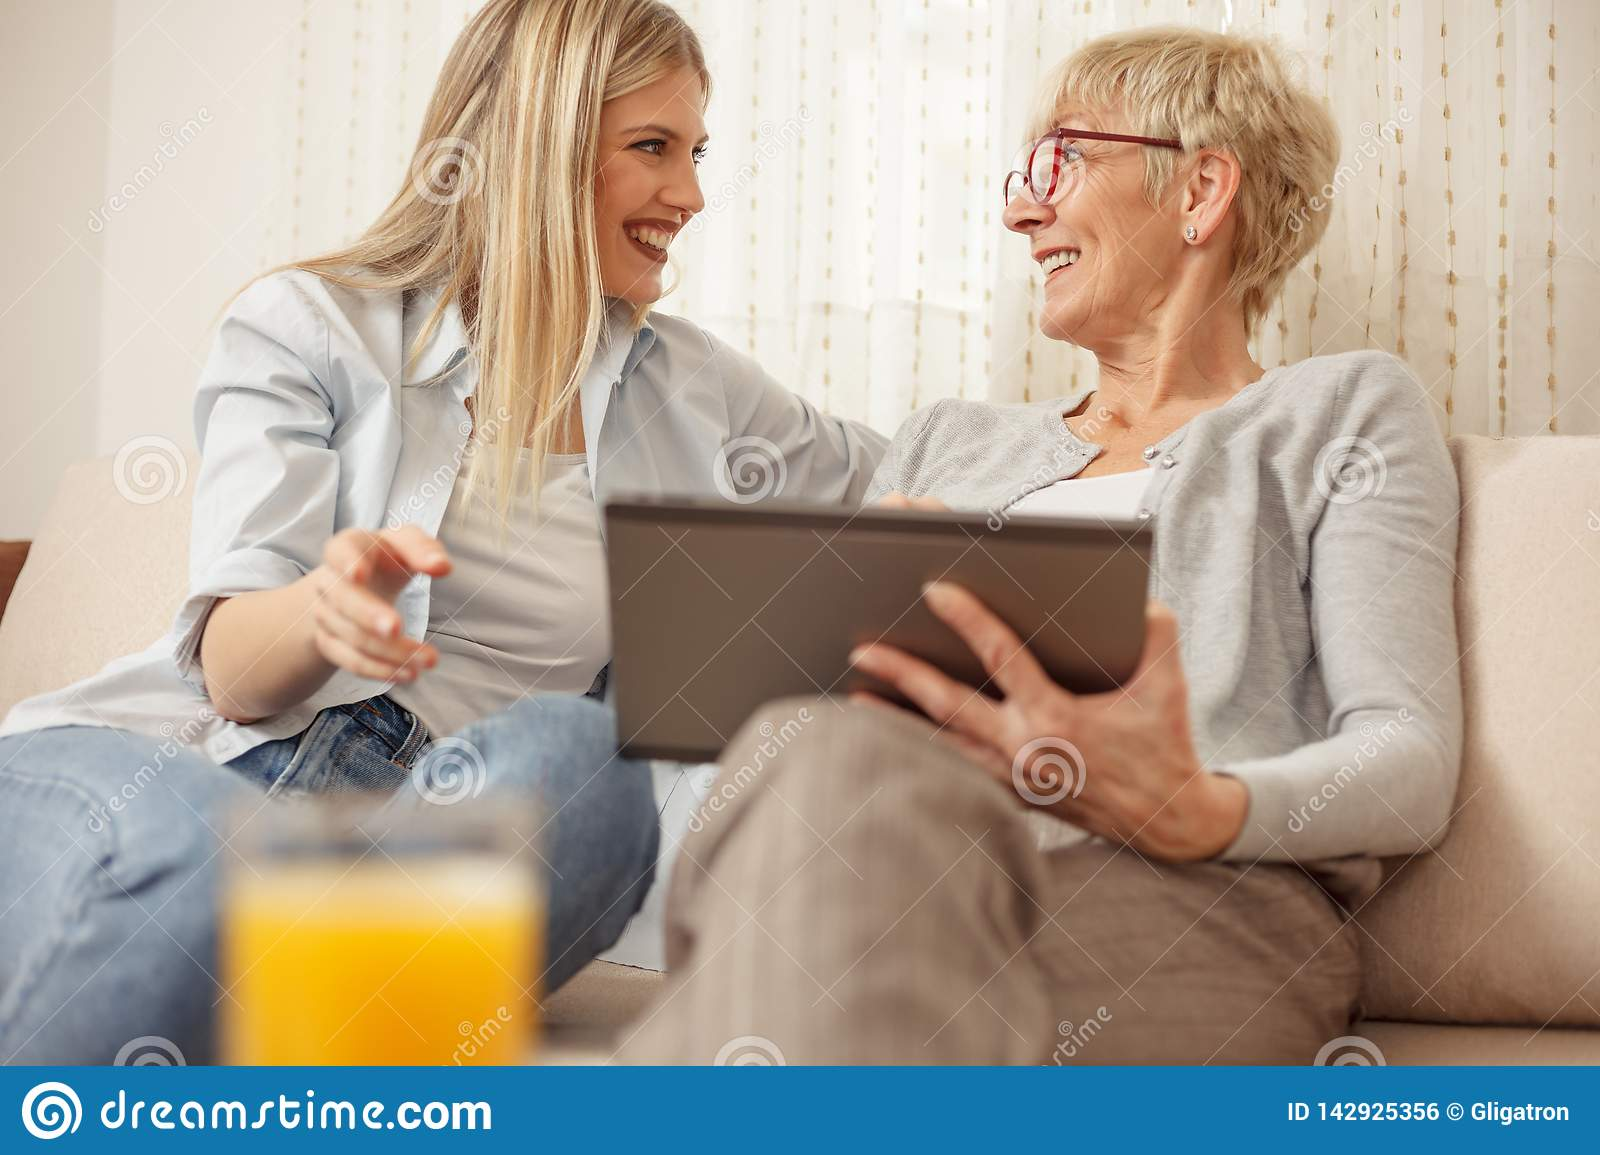 Mother and daughter laughing and looking at each other while using a tablet